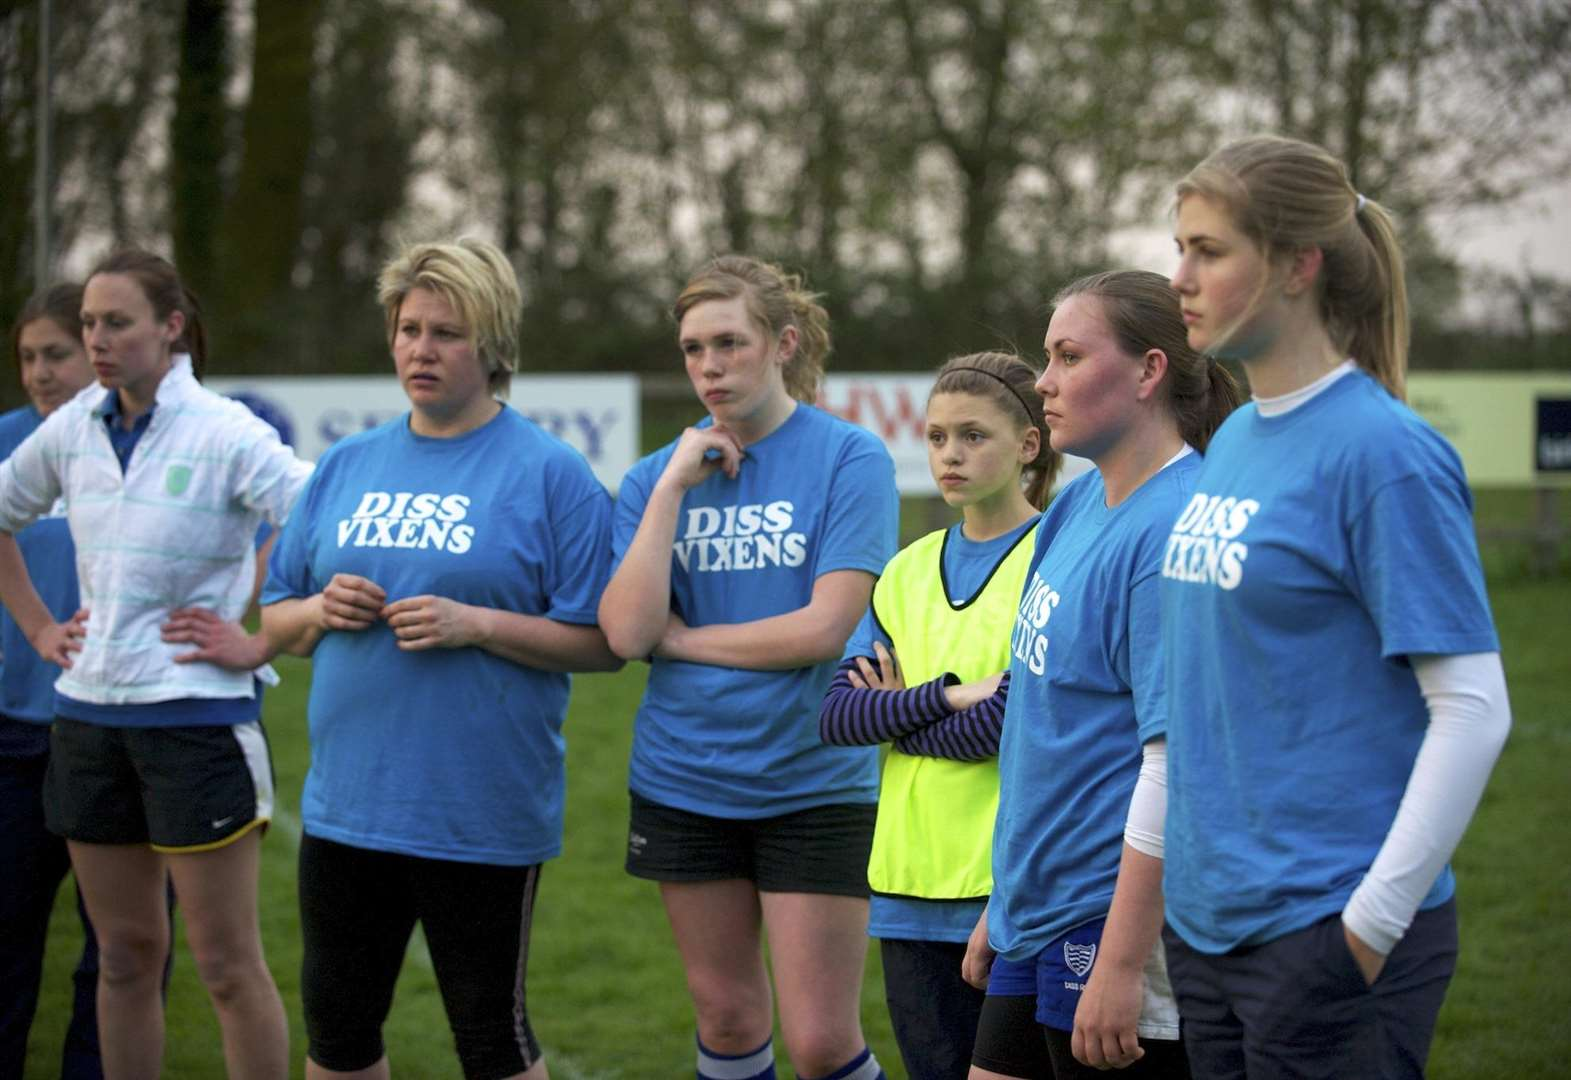 Club hope to bring back ladies team